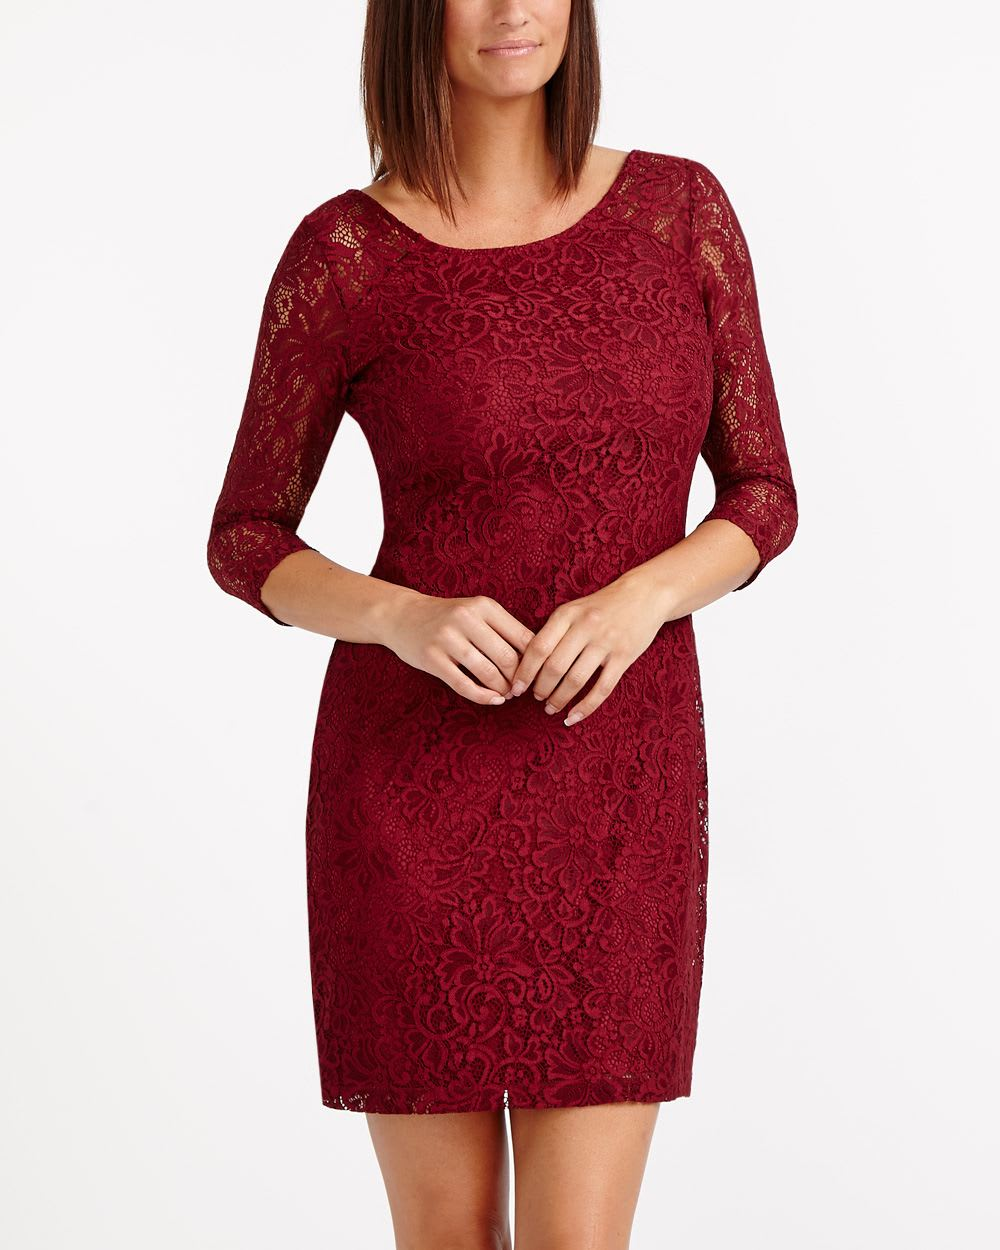 Evening Lace Dress